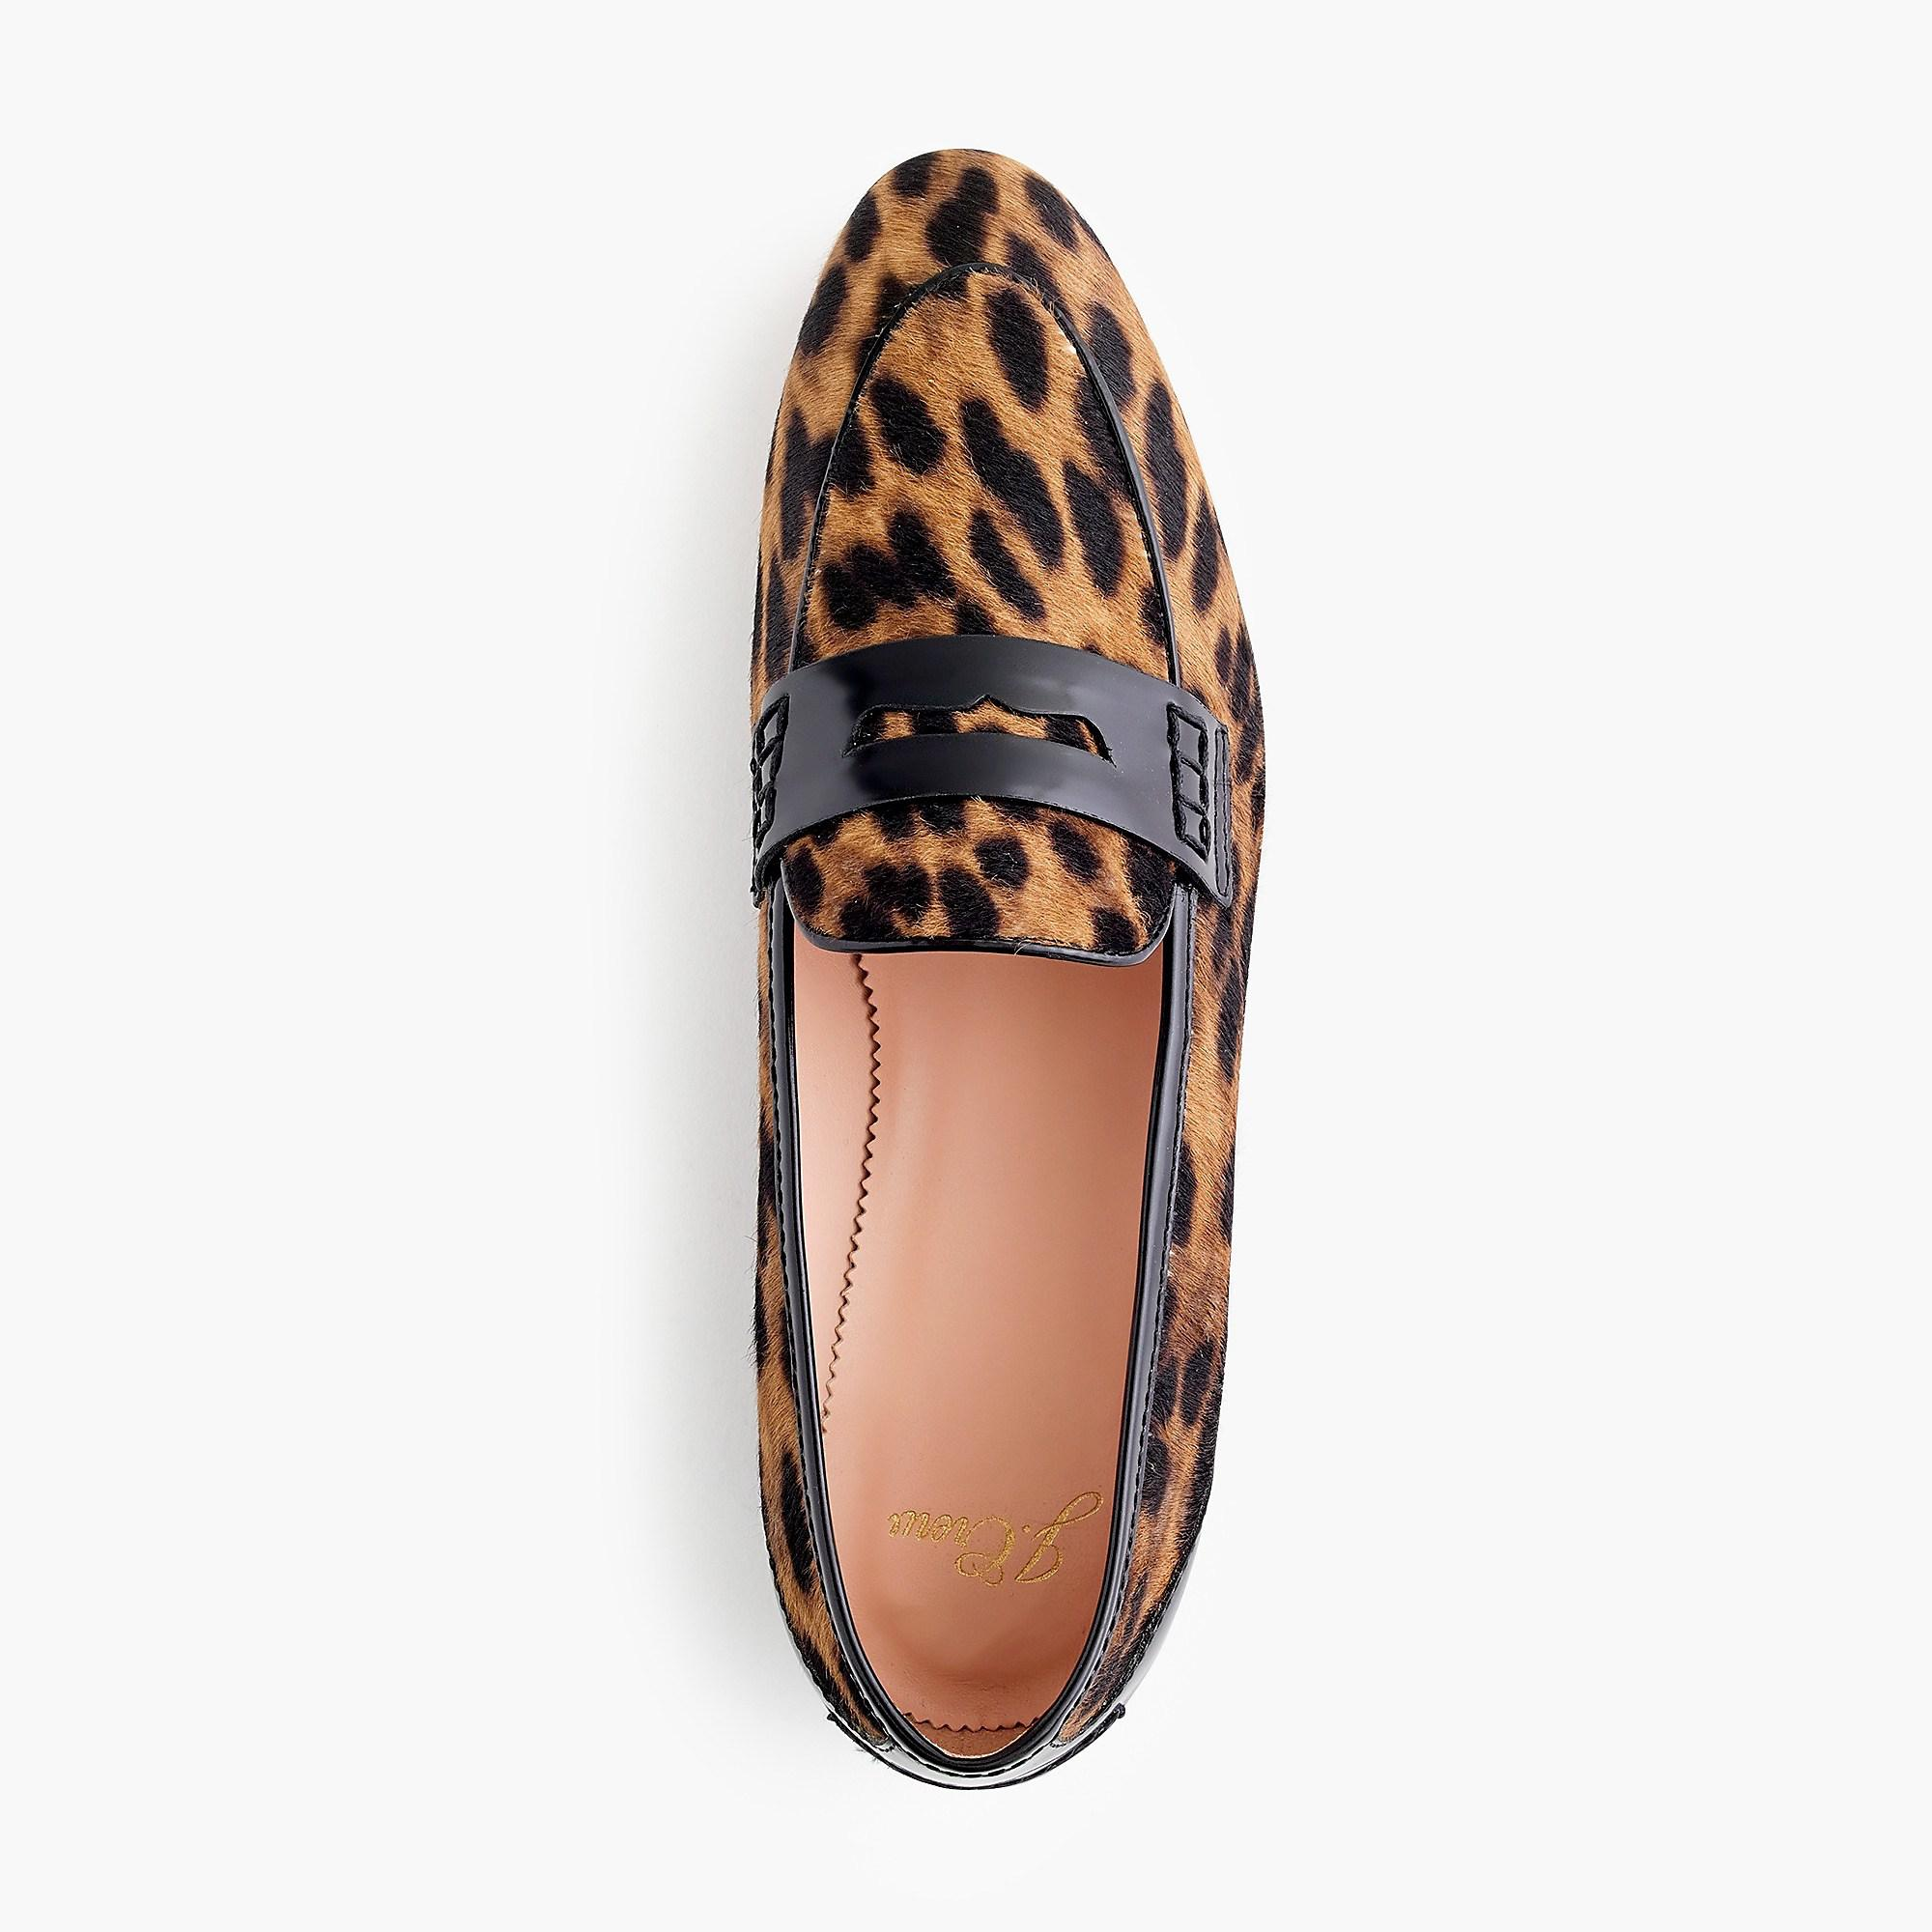 e2737f67405 J.Crew Academy Penny Loafers In Leopard Calf Hair in Brown - Lyst